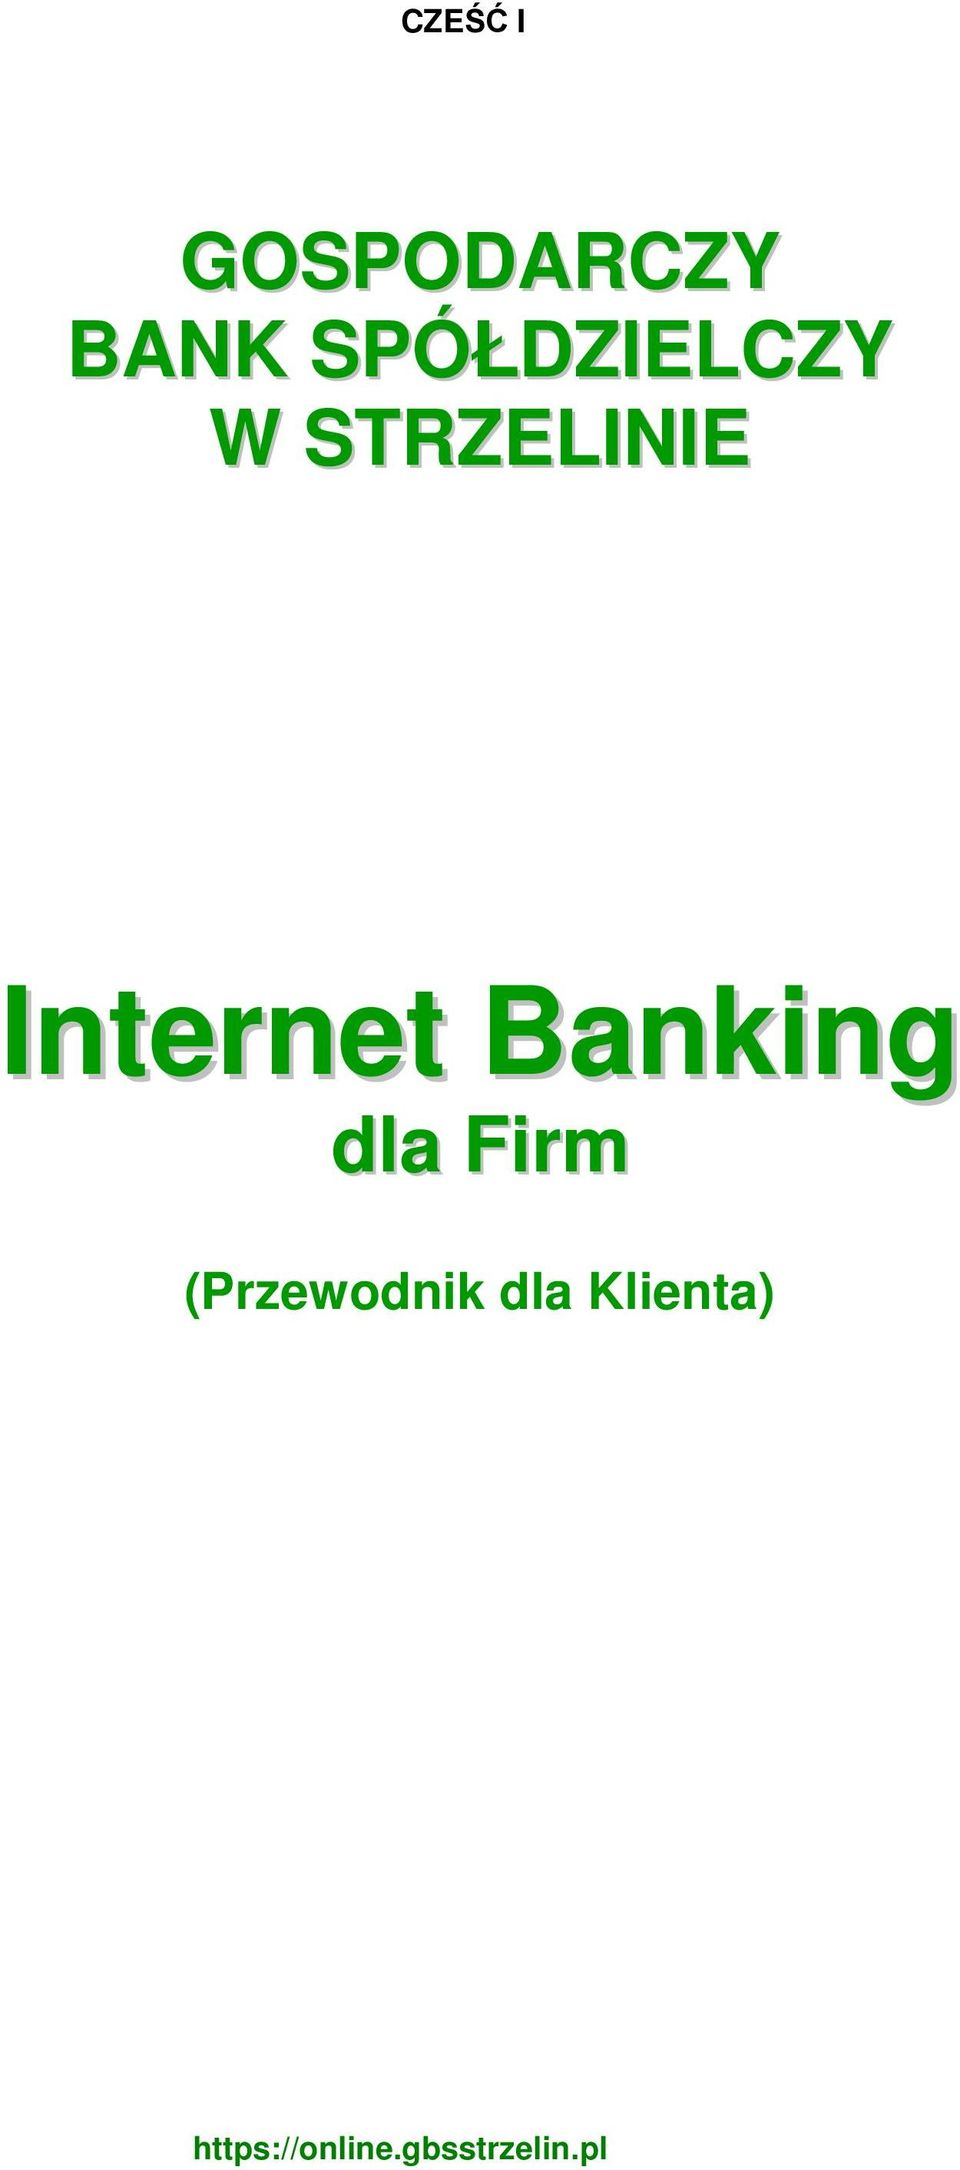 Internet Banking dla Firm